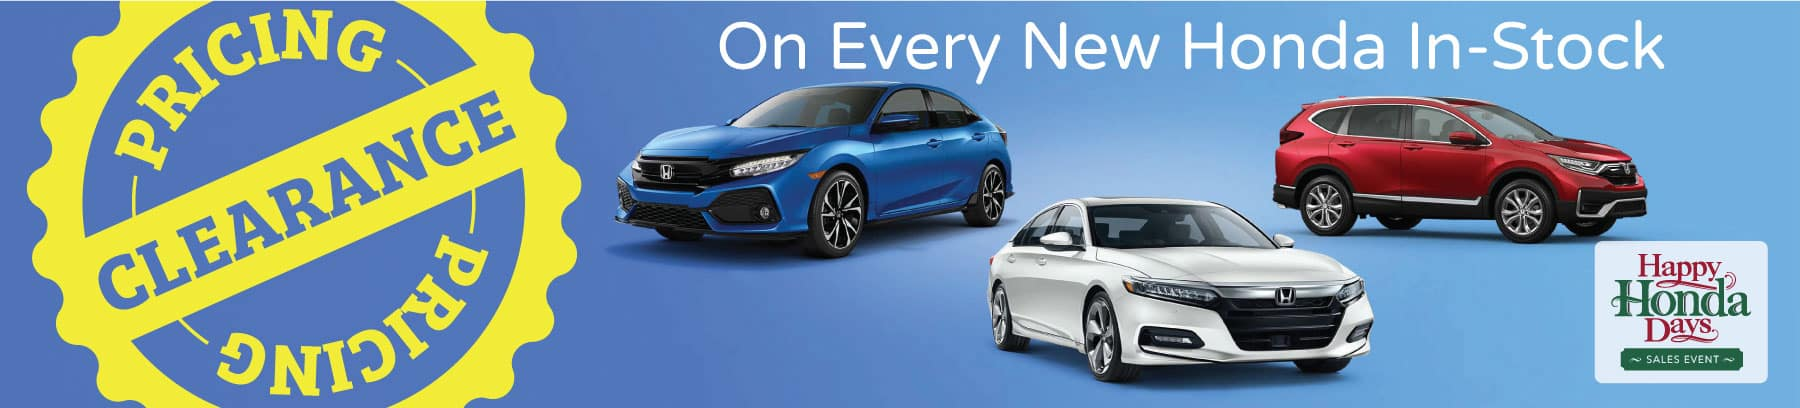 Clearance pricing on every new Honda in-stock